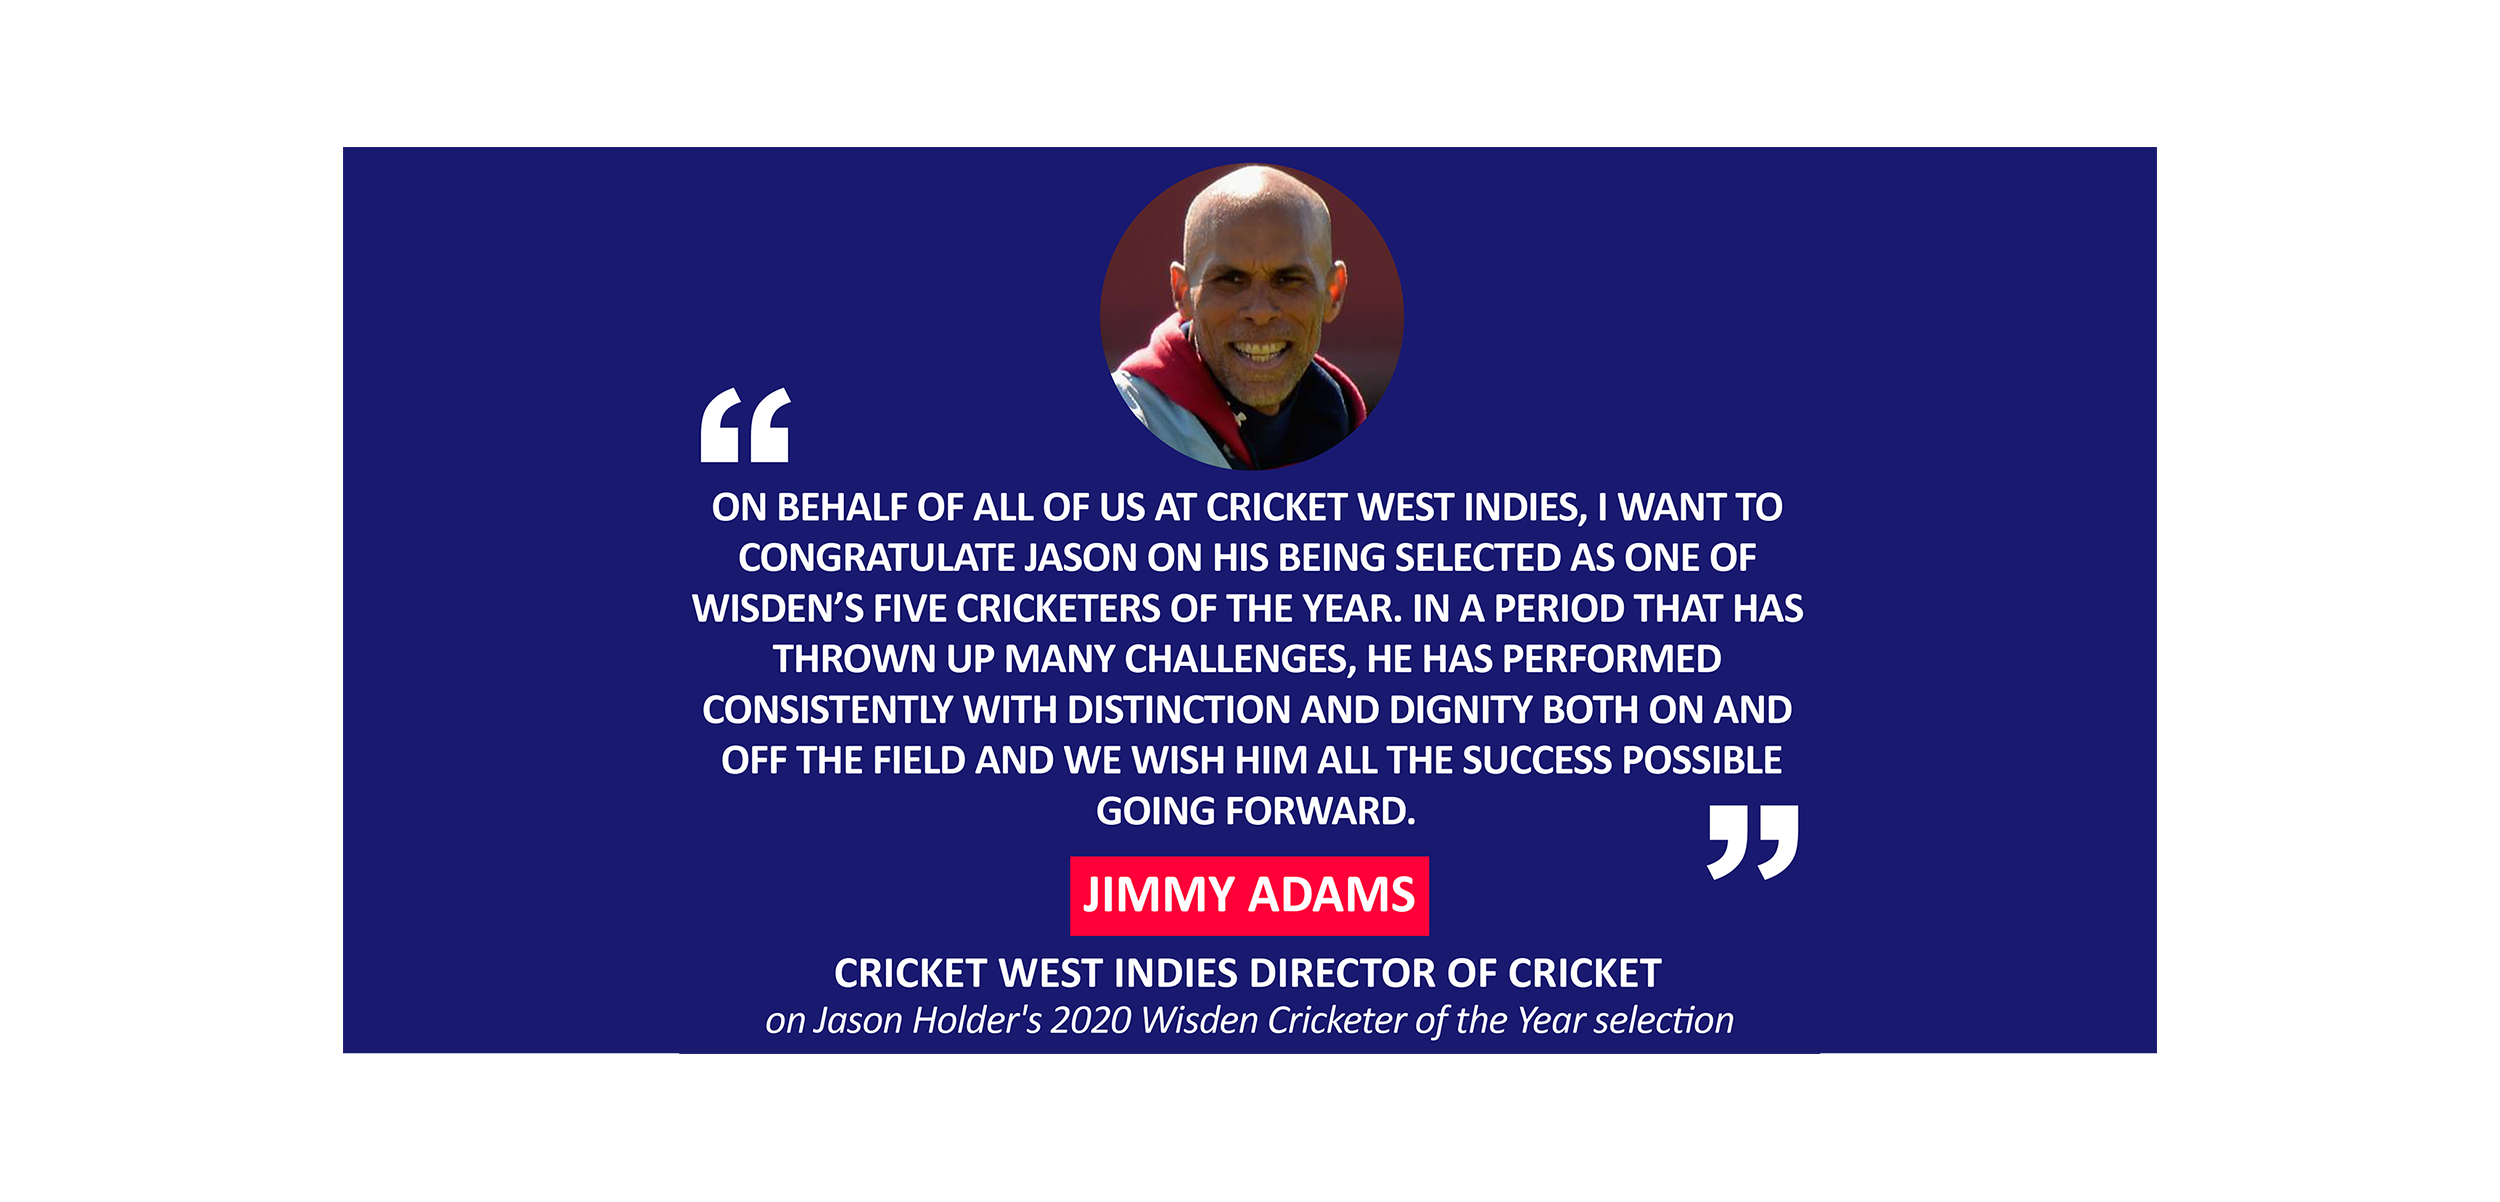 Jimmy Adams, Cricket West Indies Director of Cricket on Jason Holder's 2020 Wisden Cricketer of the Year selection